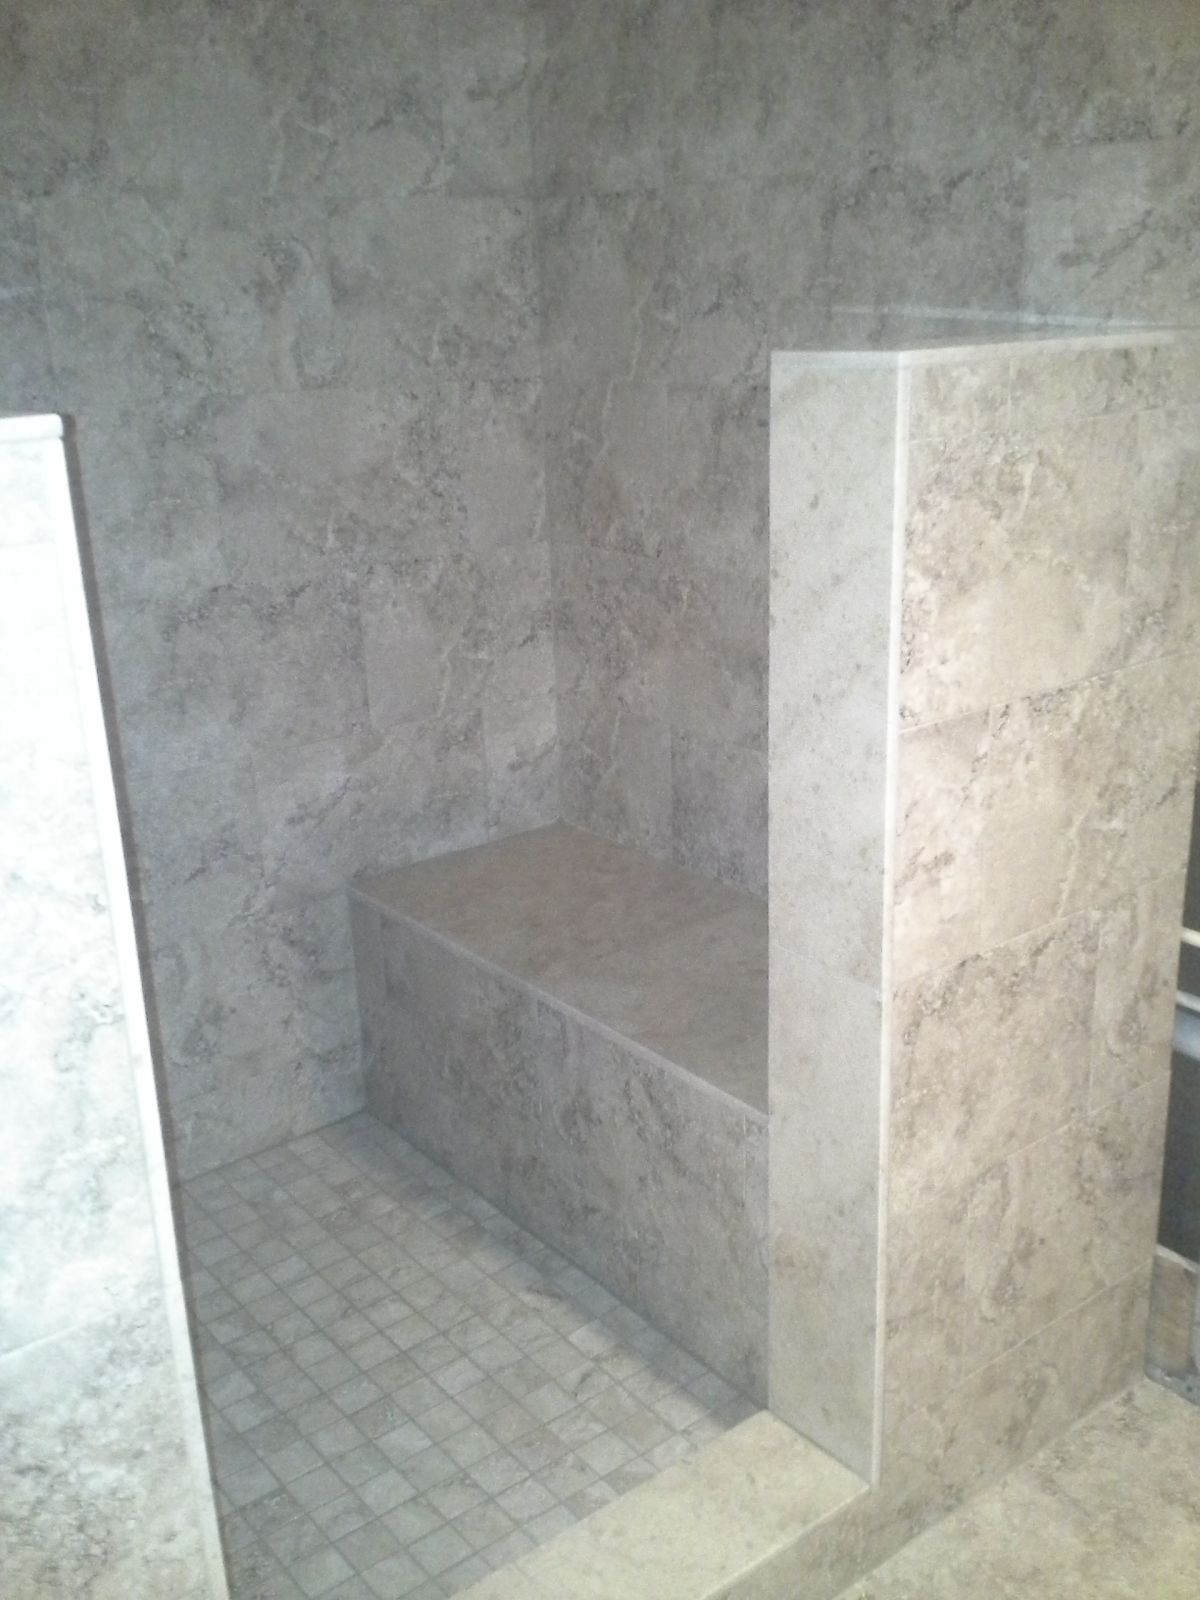 Tile installation south florida flooring contractor installation tile installation and remodeling contractor 005 dailygadgetfo Choice Image